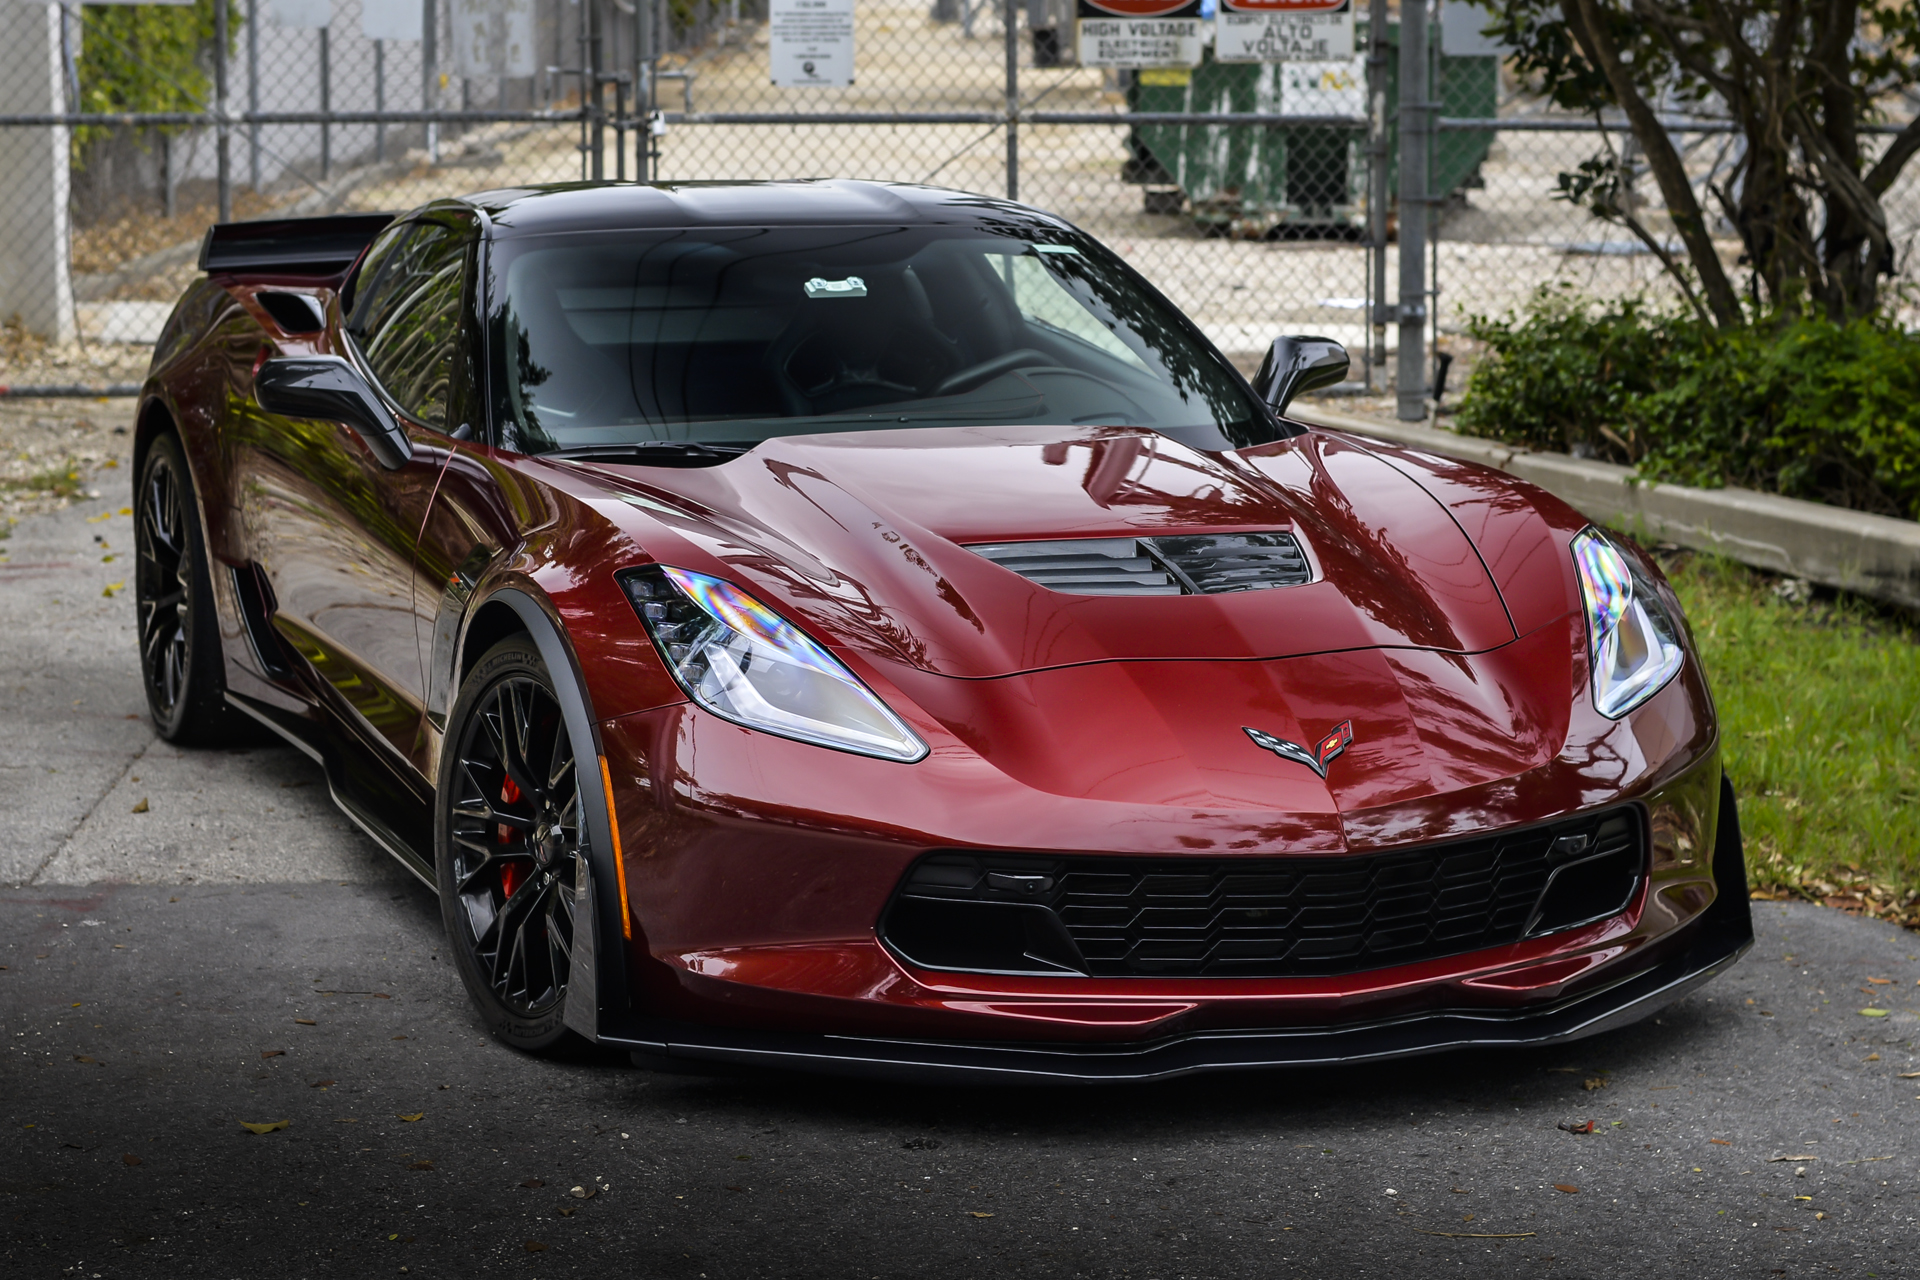 Corvette Z06 Armored With Paint Protection Film Ready For